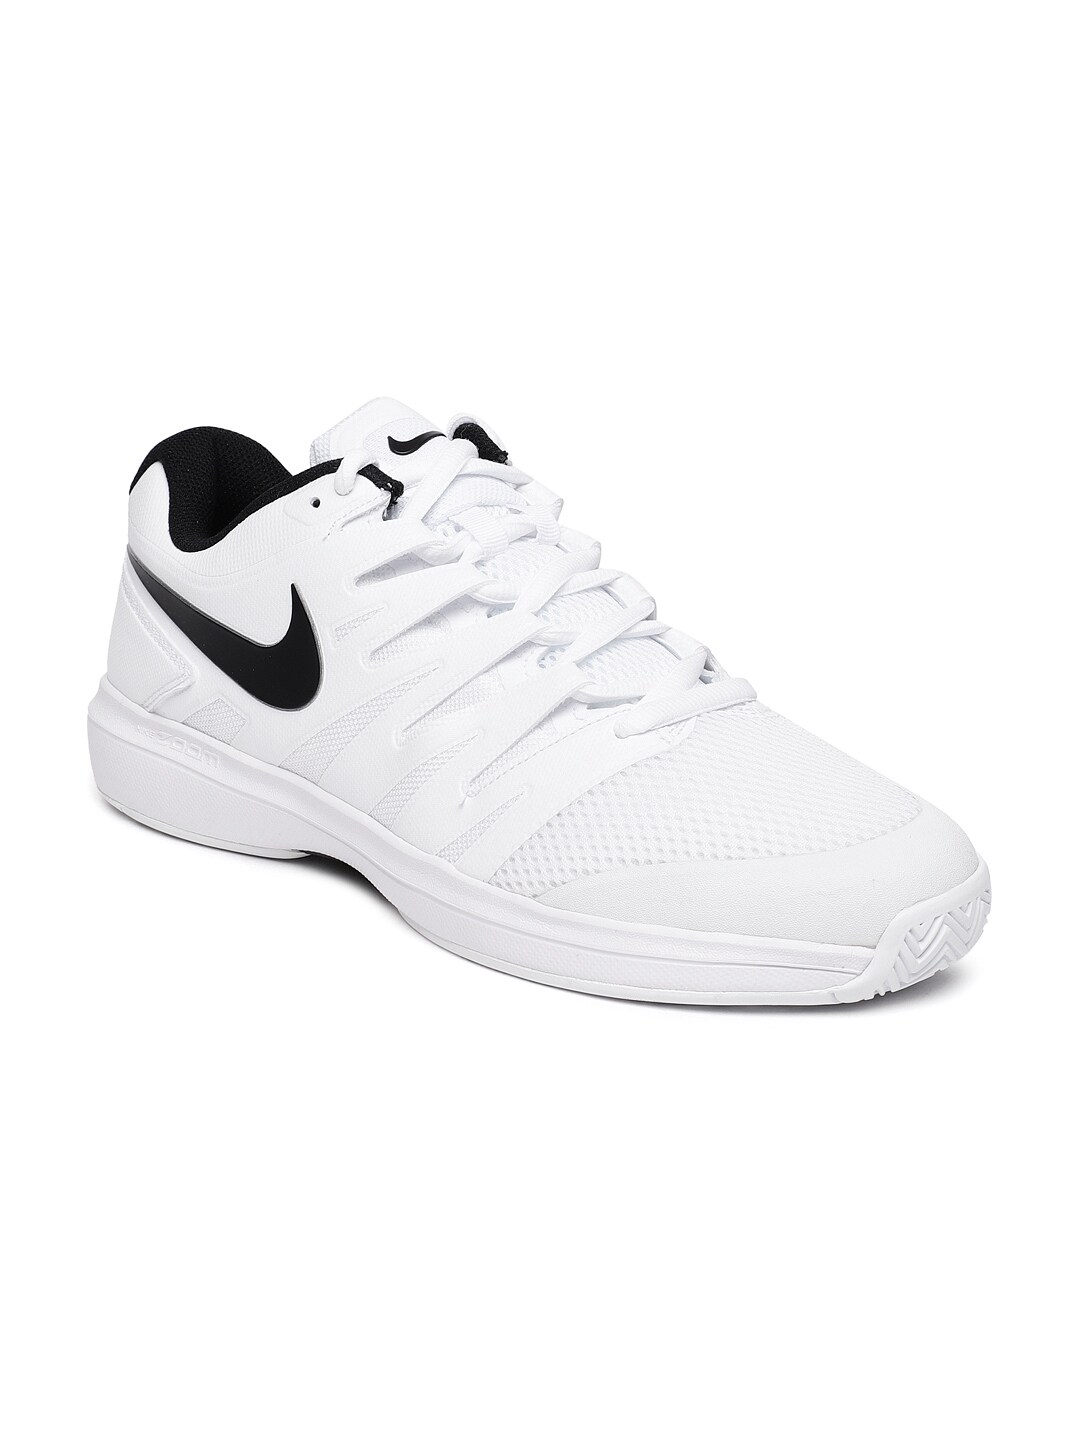 600e4949a898b9 Nike Air White Shoes - Buy Nike Air White Shoes online in India